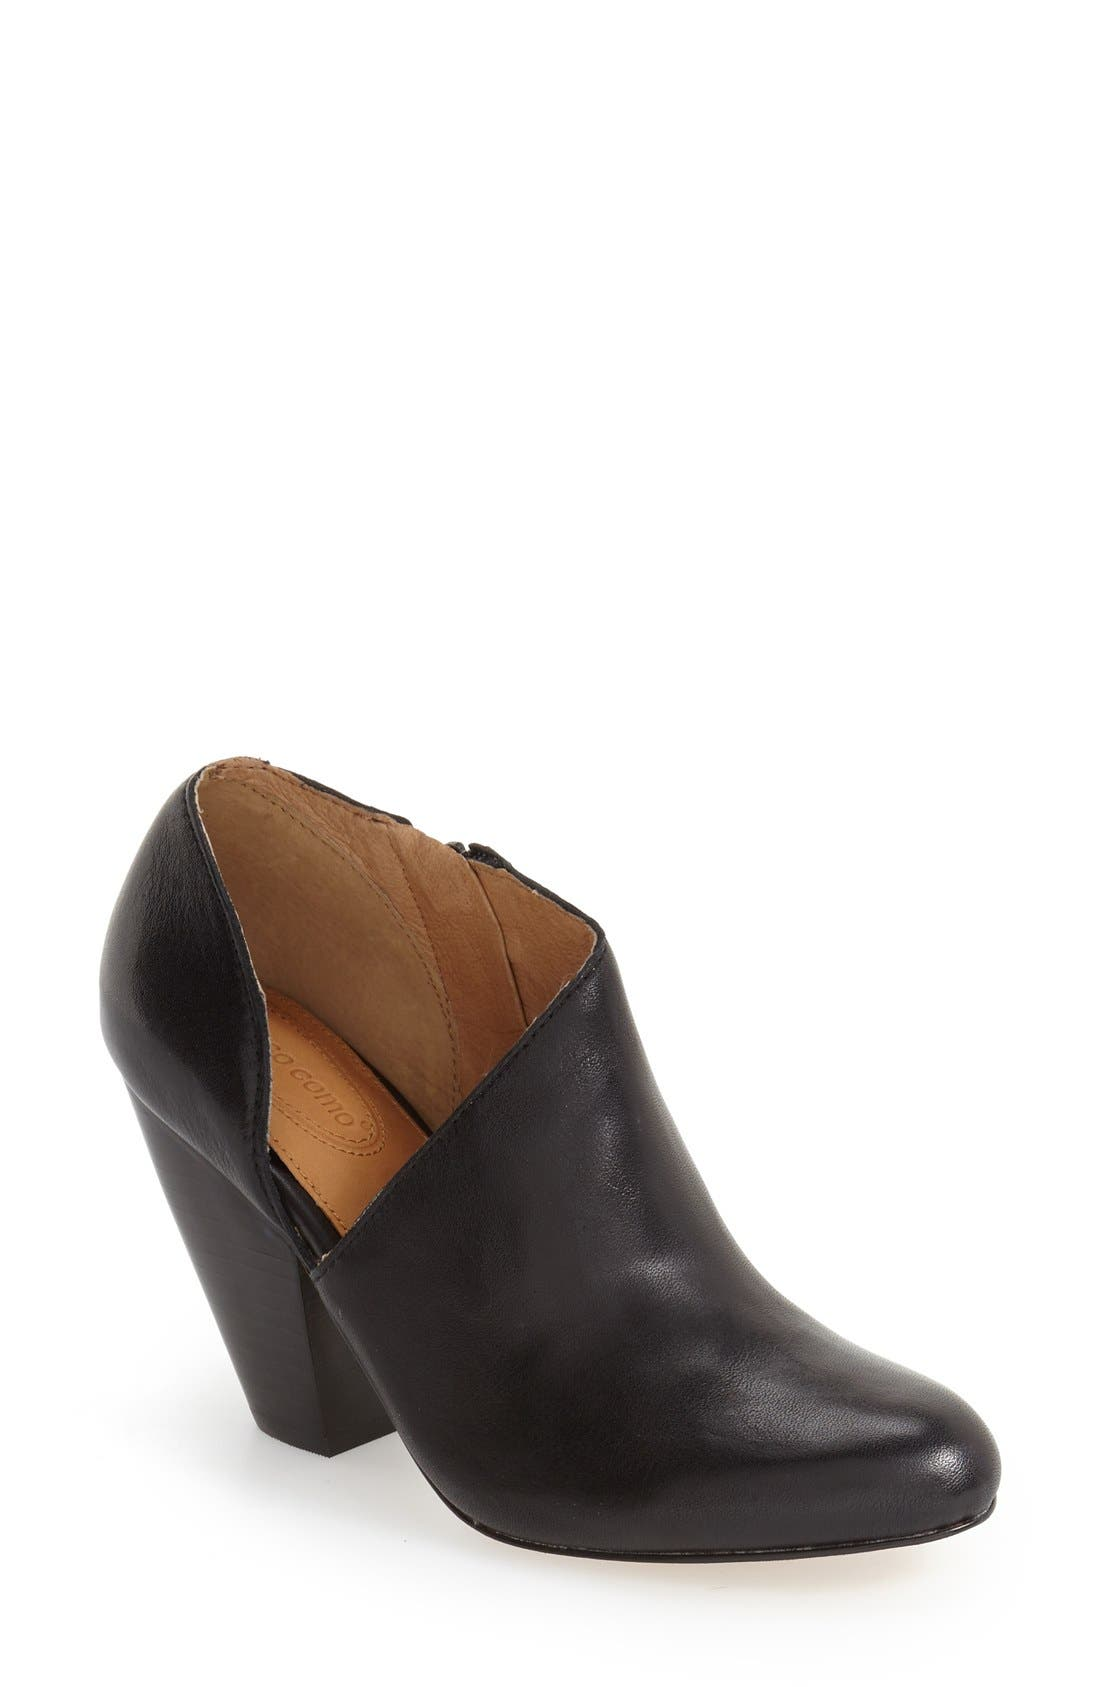 Alternate Image 1 Selected - Corso Como 'Yonkers' Almond Toe Cutout Bootie (Women)